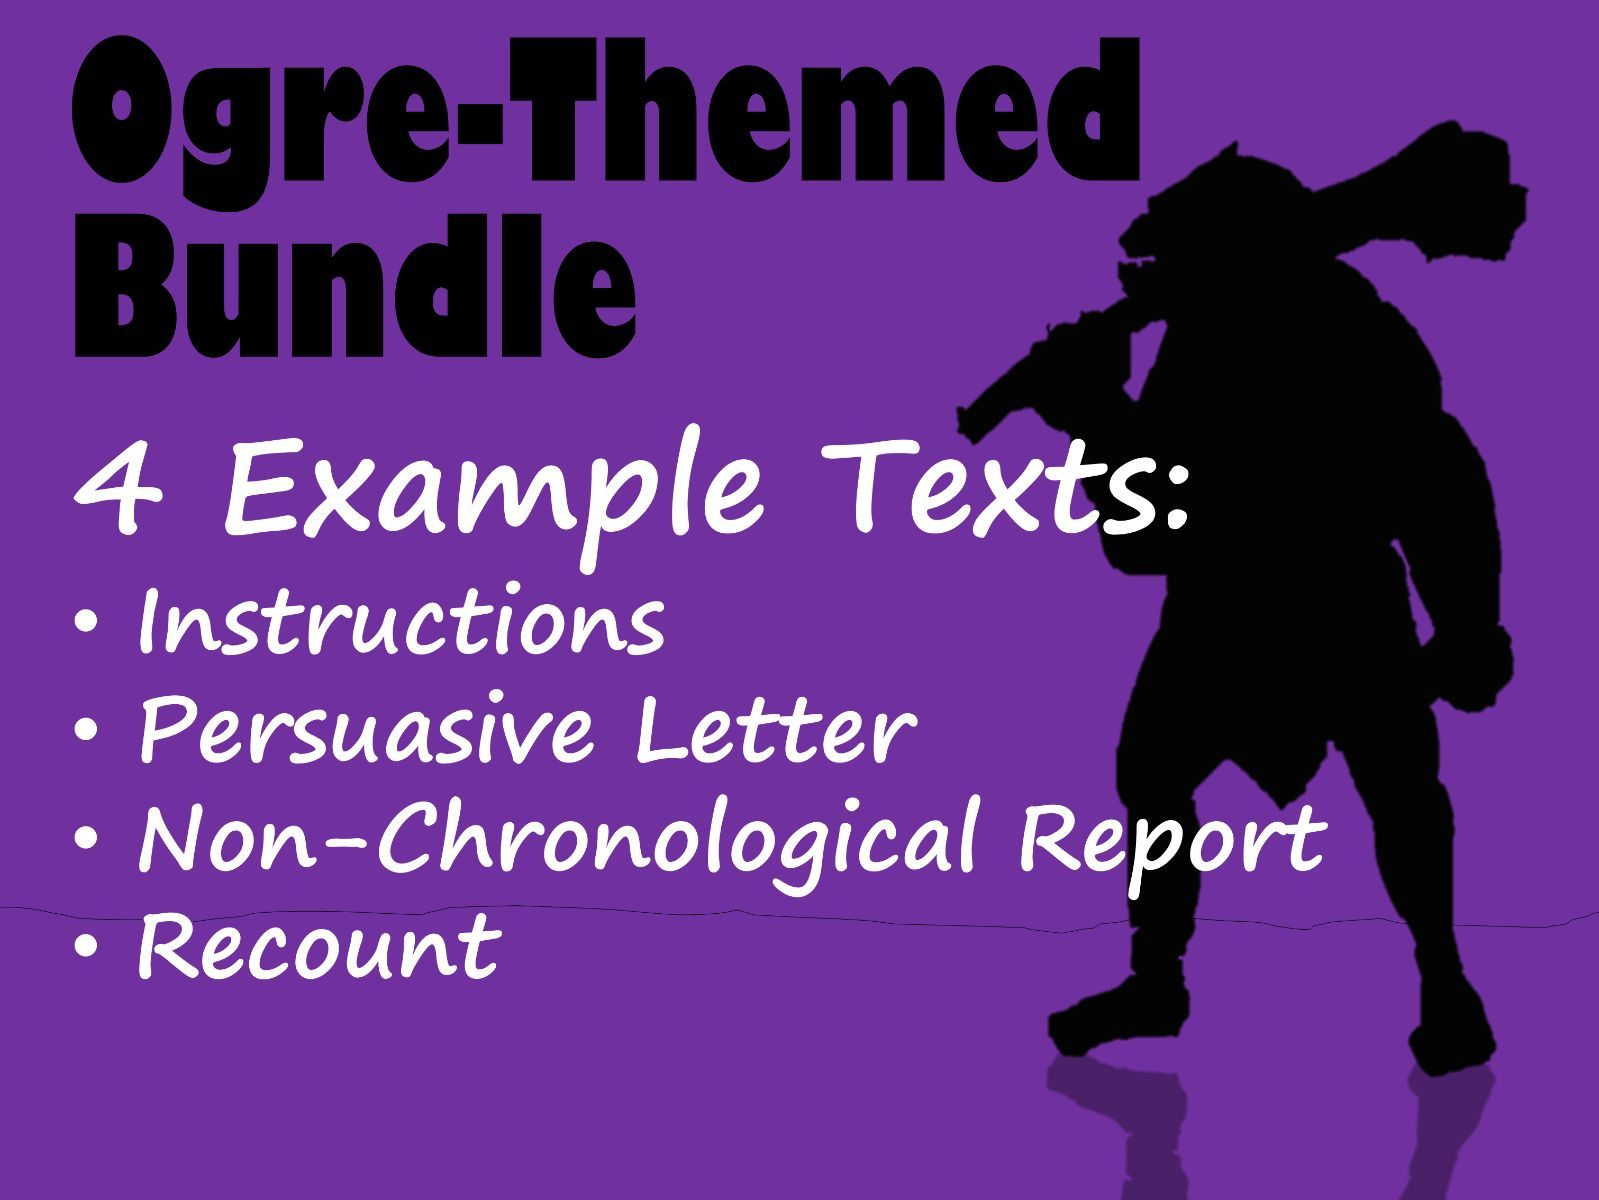 Ogre 4 Example Fiction and Non-Fiction Texts BUNDLE with Feature Identification & Answers